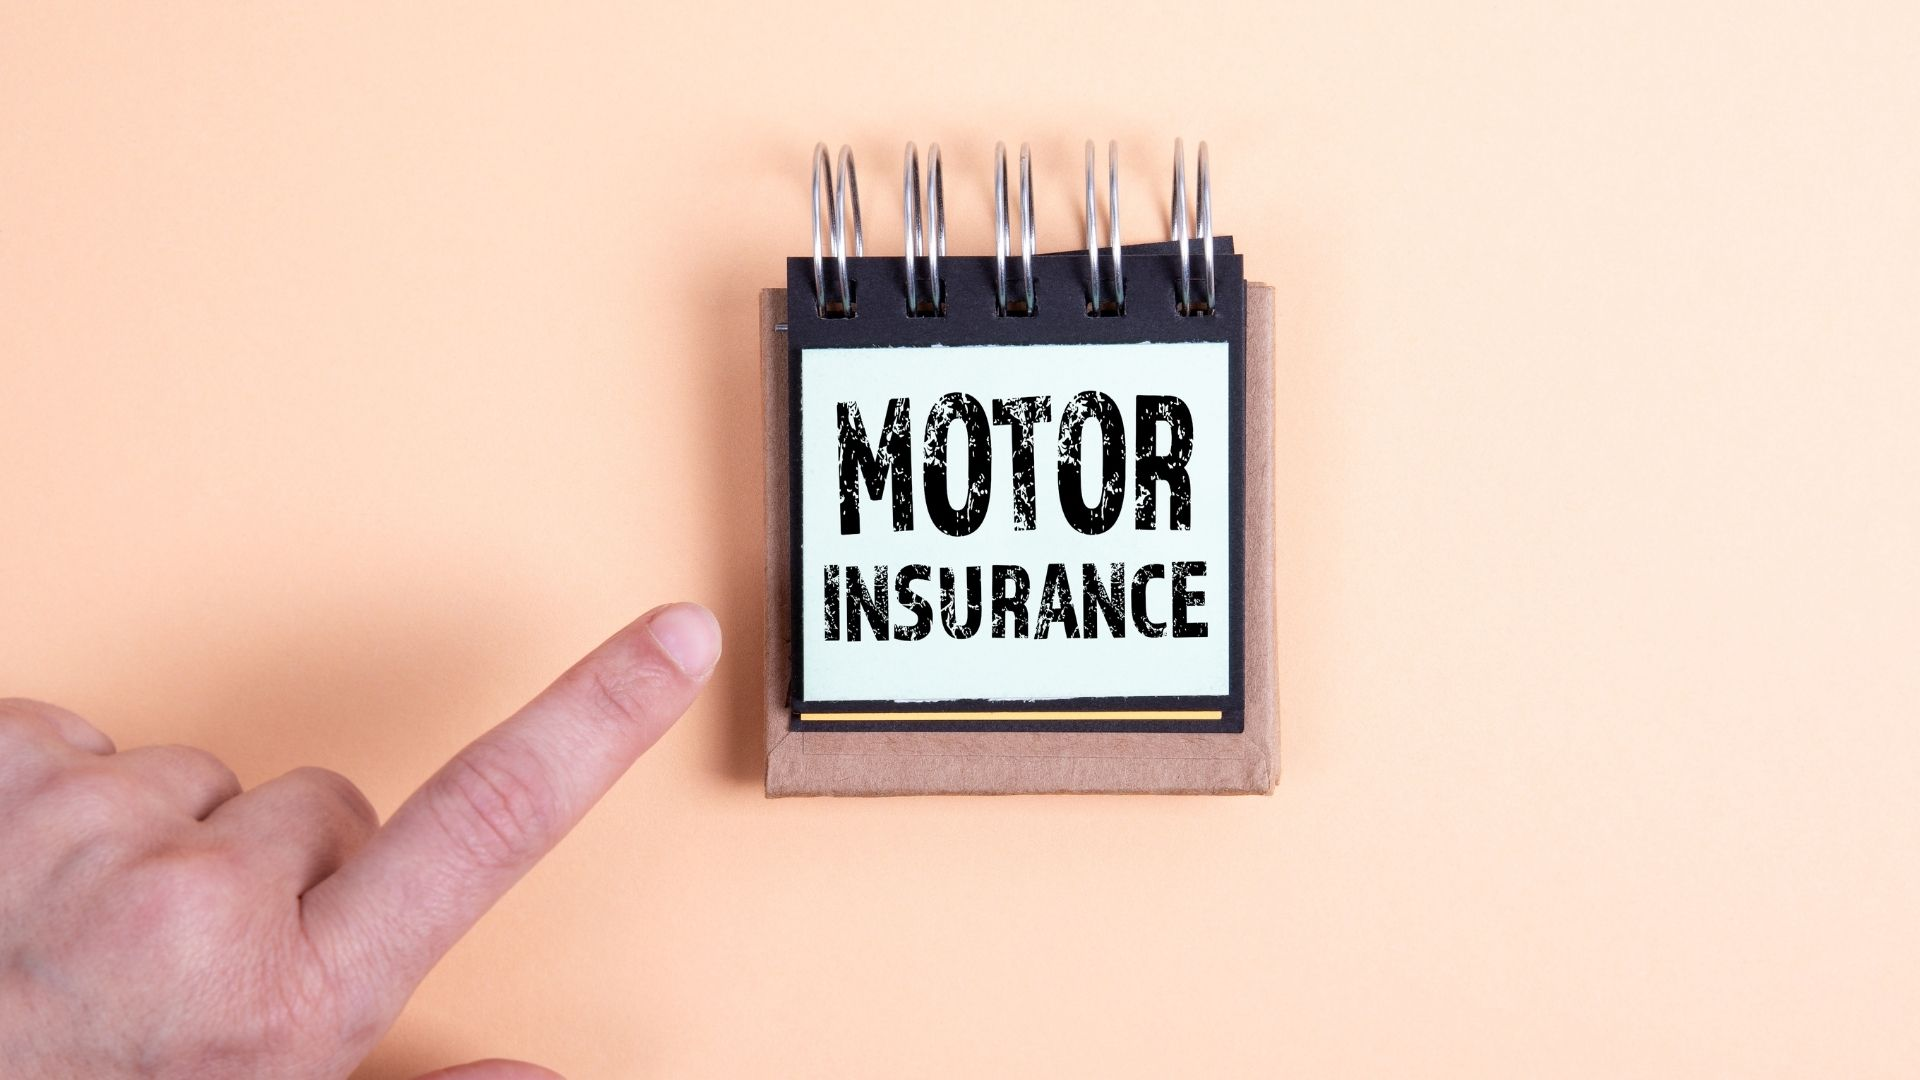 2020: The paradoxical year that has reshaped the future of motor insurance and related sectors 14